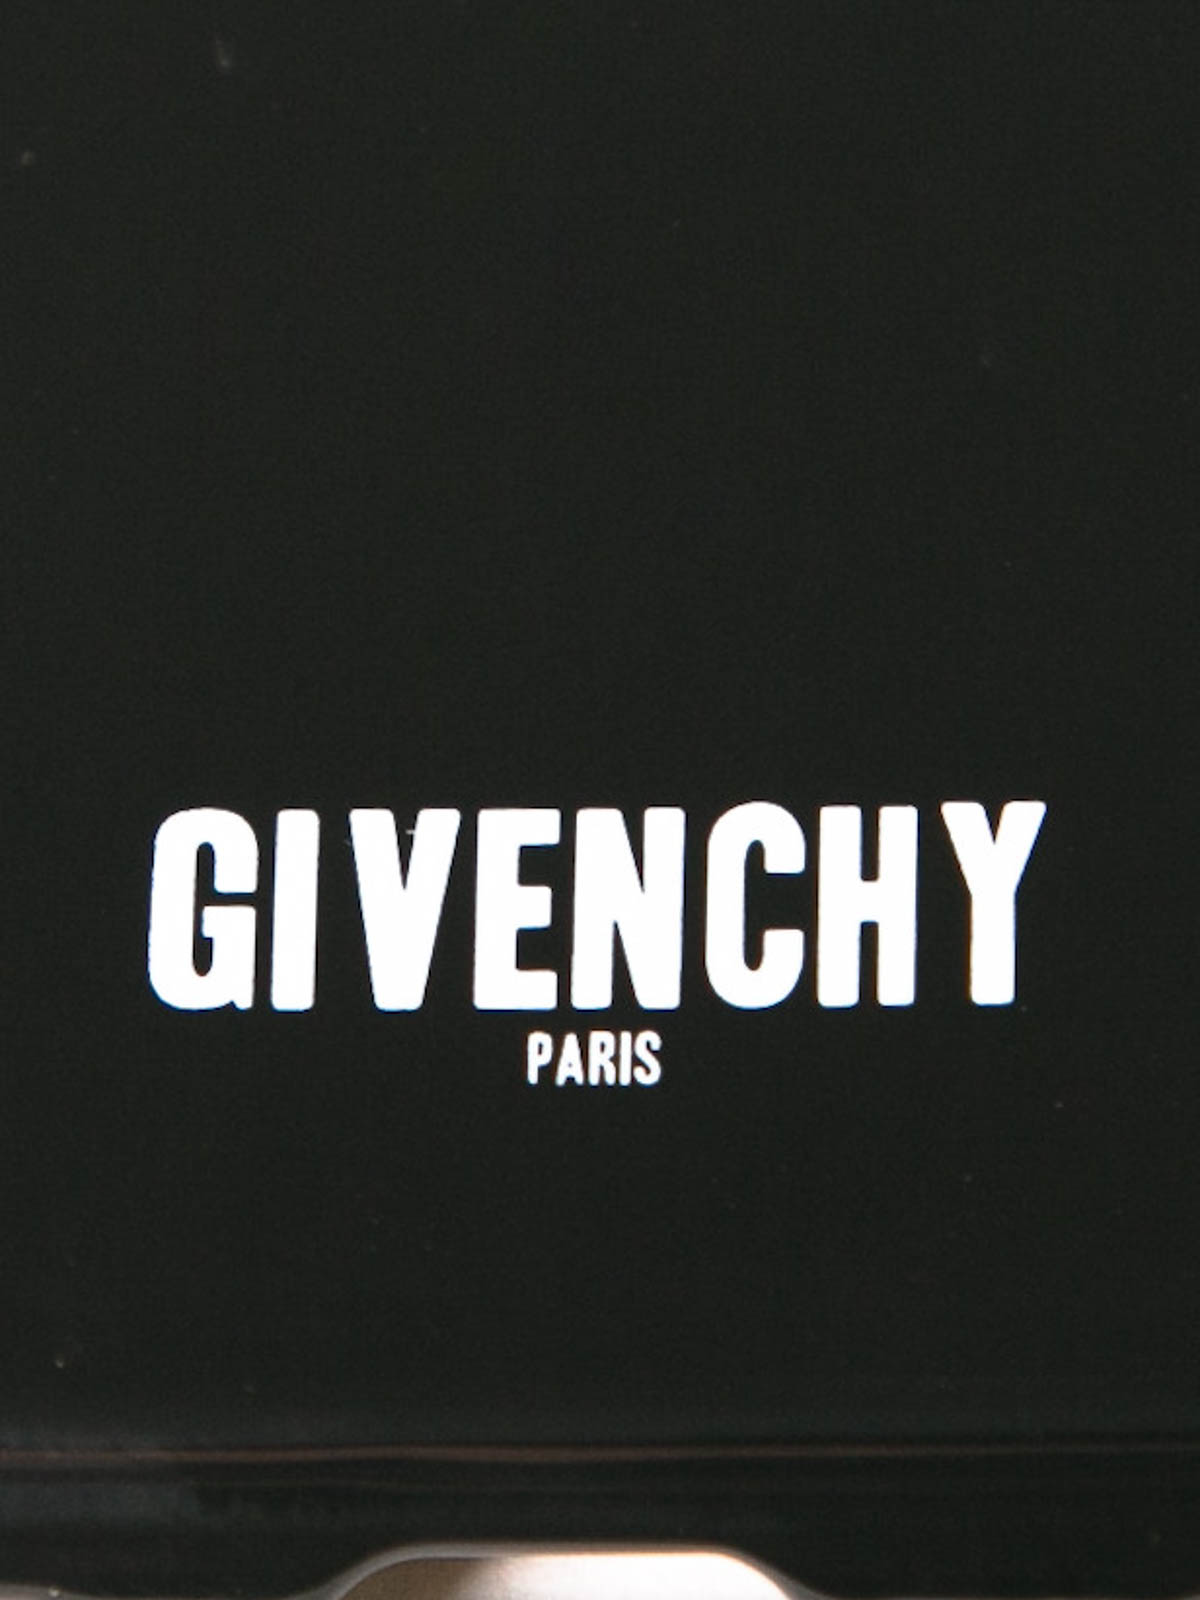 cover givenchy iphone 6